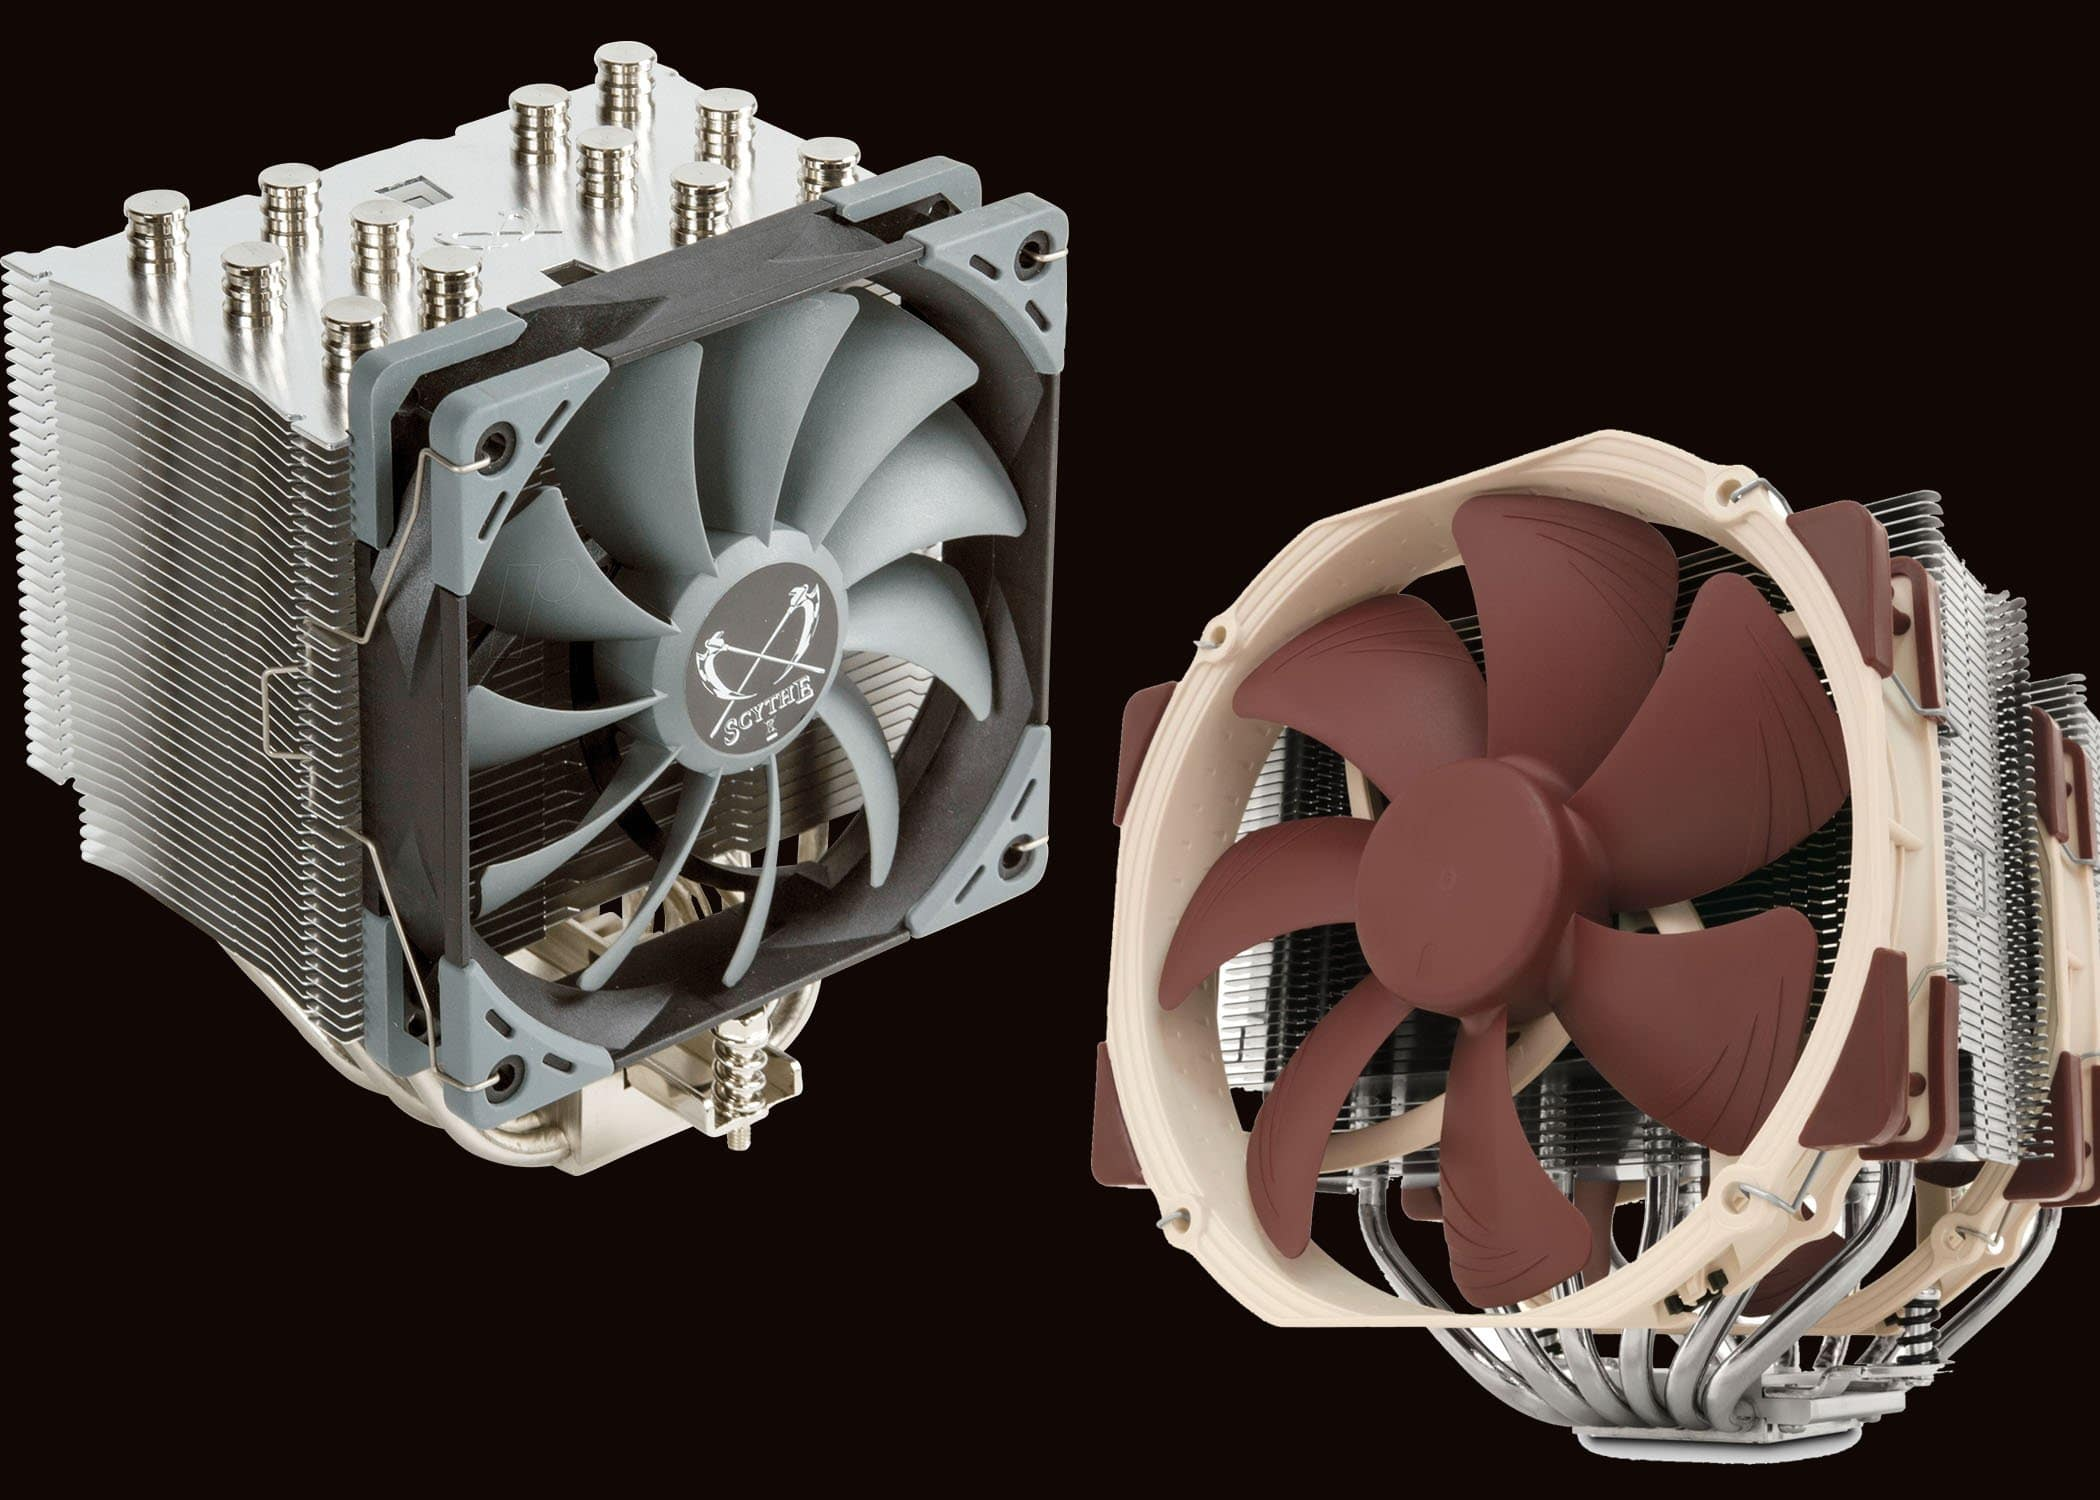 5 Best Ryzen 5 3600 CPU Coolers in 2021 (Air and AIO Coolers)